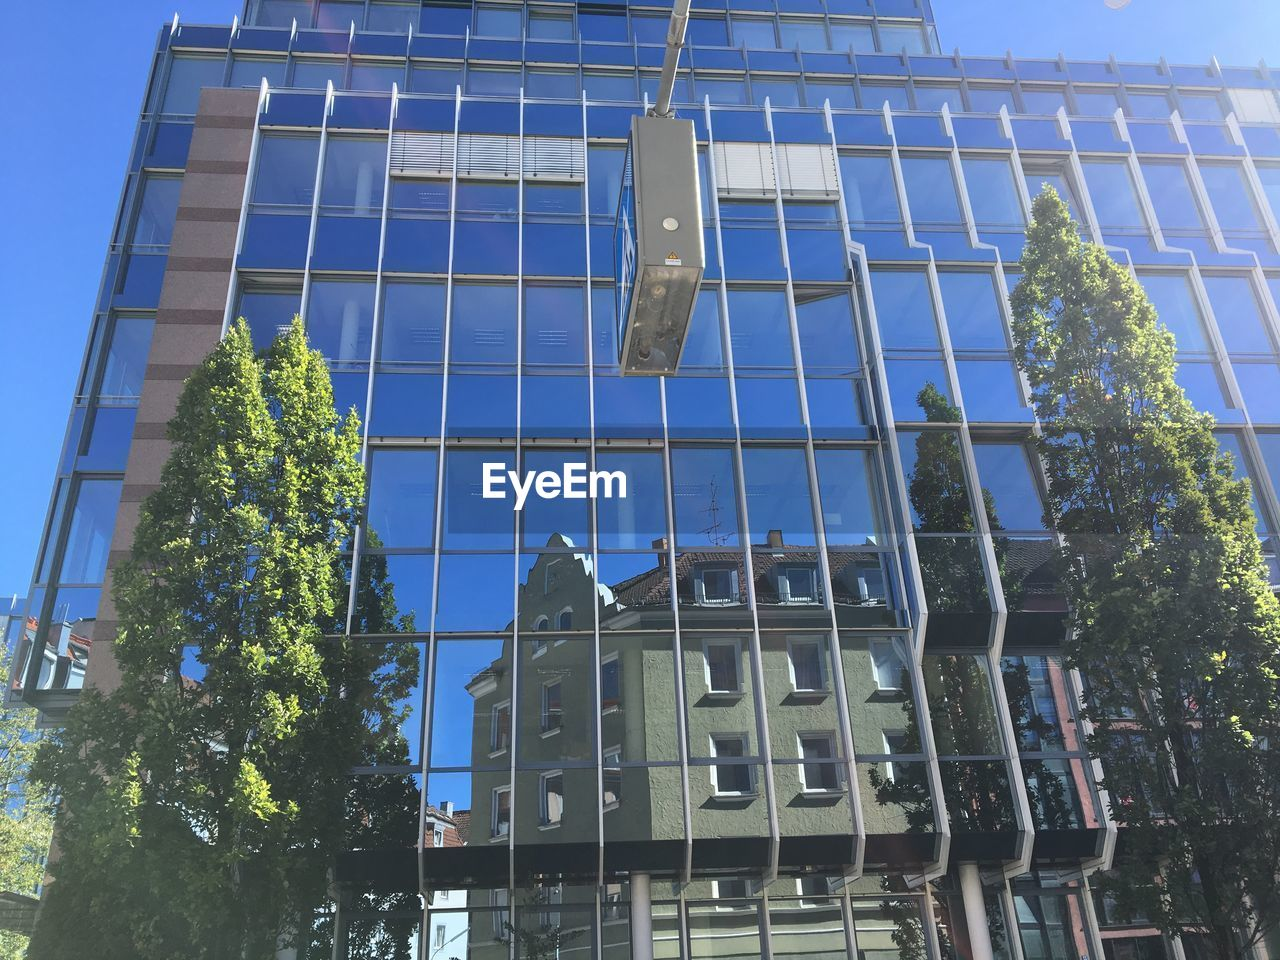 architecture, built structure, building exterior, building, low angle view, city, sky, modern, day, nature, no people, glass - material, office building exterior, plant, tree, reflection, window, office, blue, sunlight, outdoors, skyscraper, glass